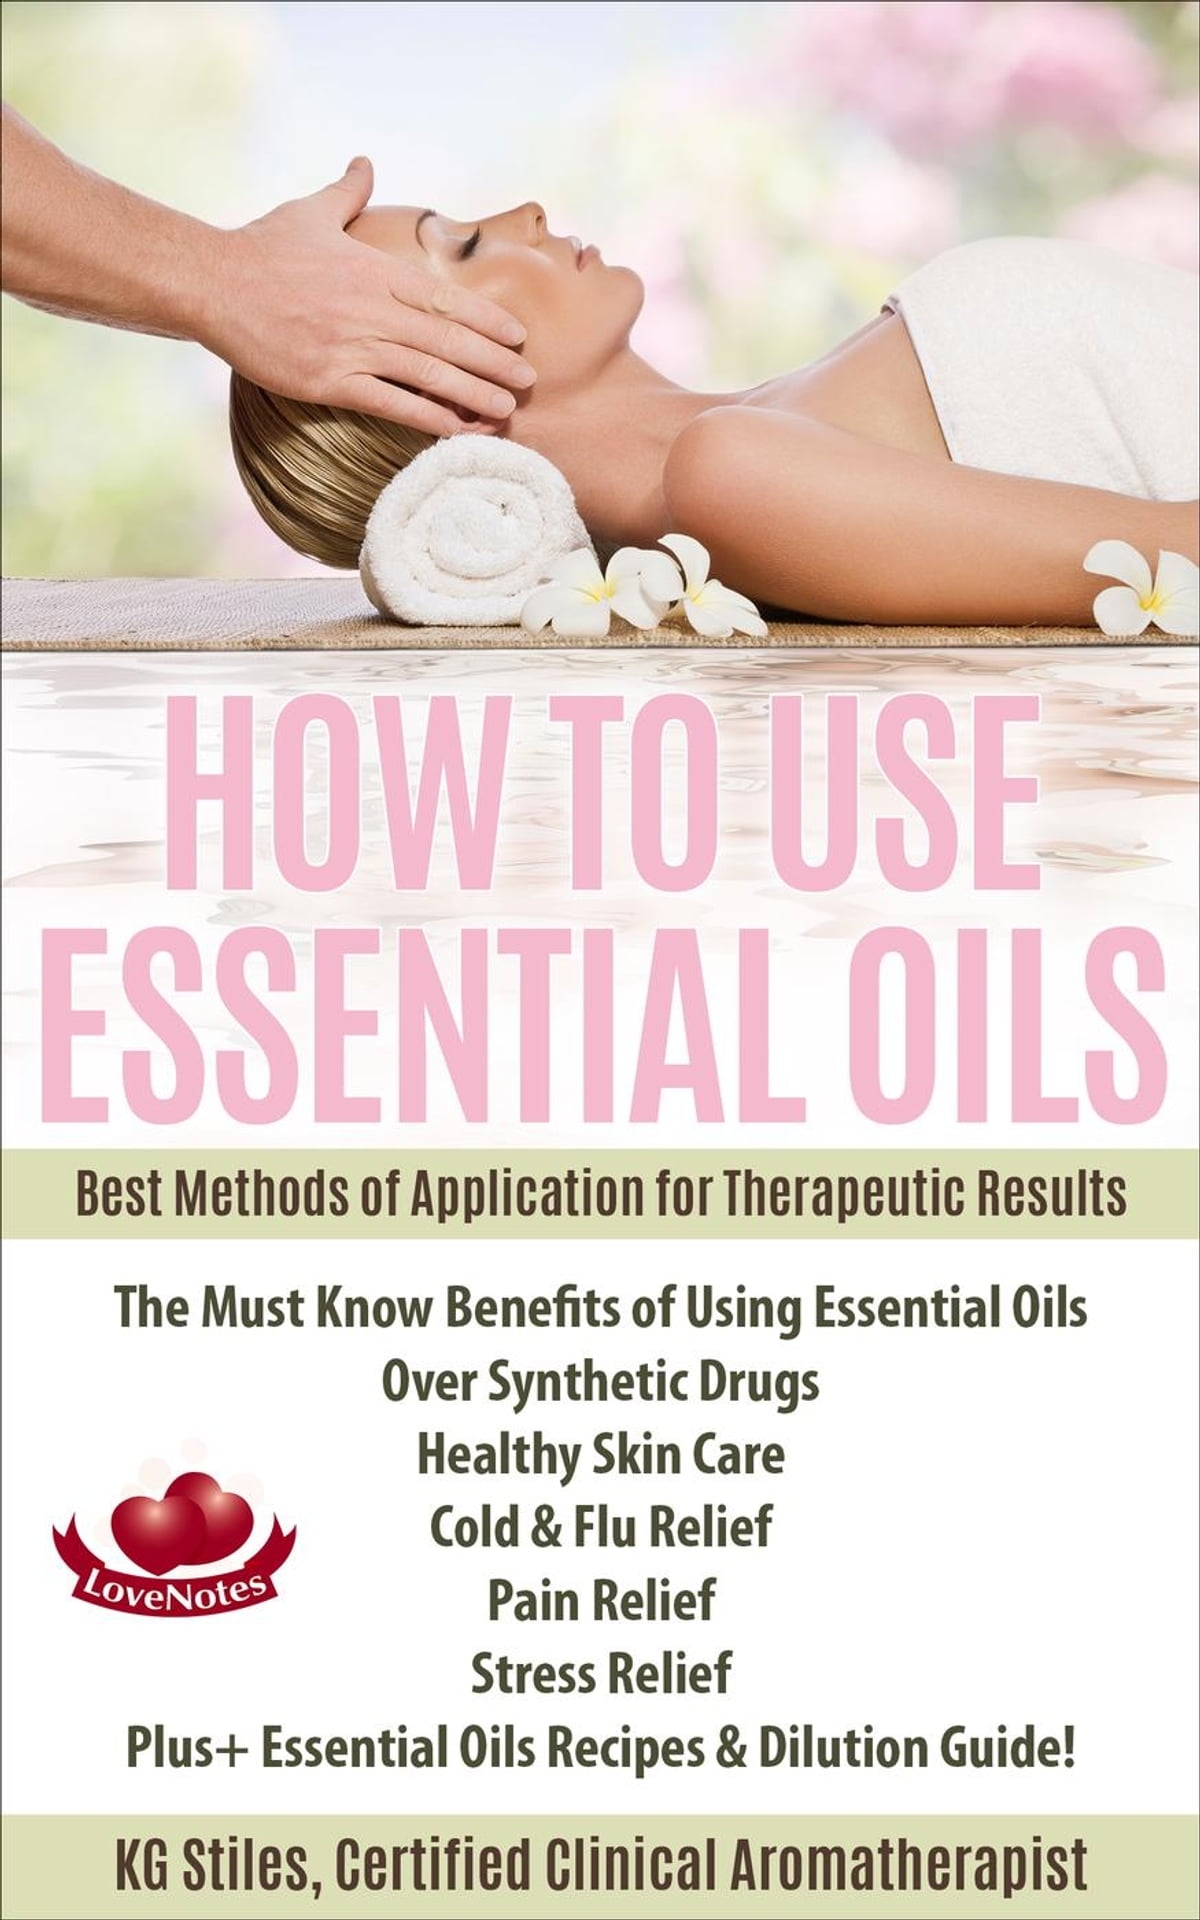 How To Use Essential Oils Best Methods Of Application For Therapeutic Results The Must Know Benefits Of Using Essential Oils Over Synthetic Drugs Healthy Skin Care Cold Flu Pain Stress